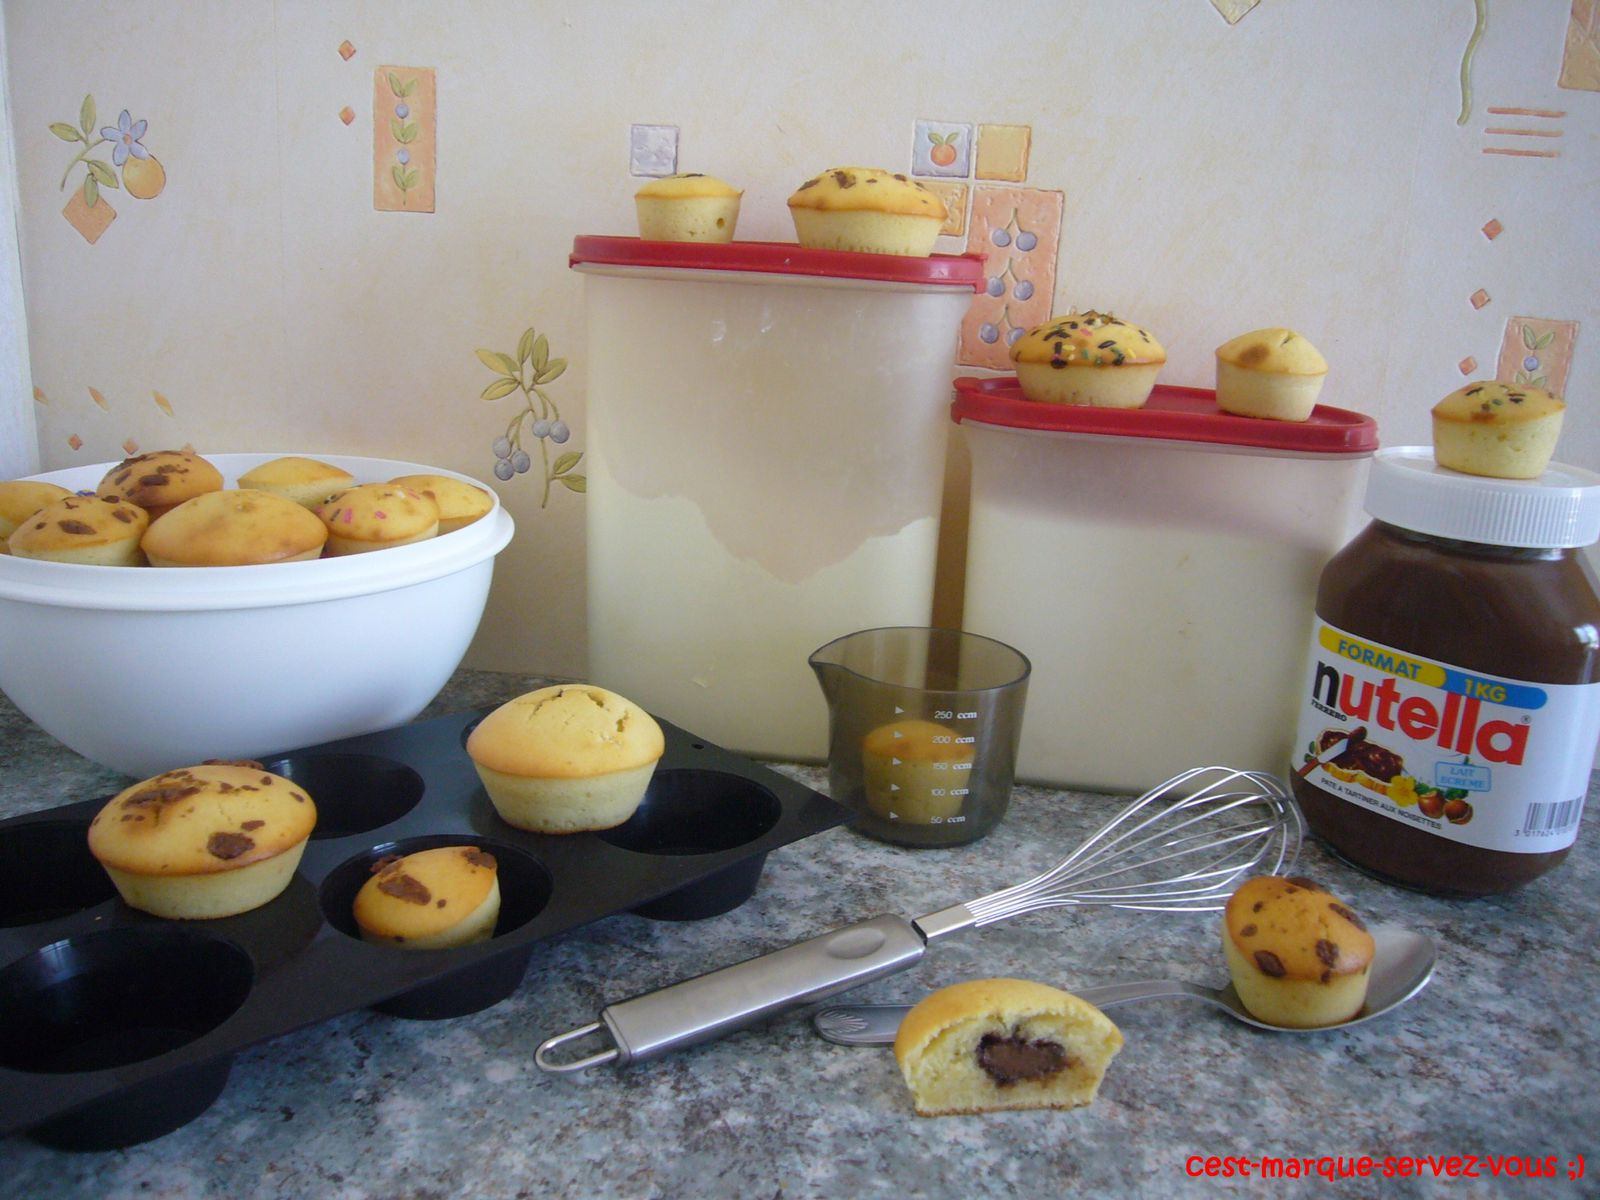 L'incontournable Muffin au Nutella.